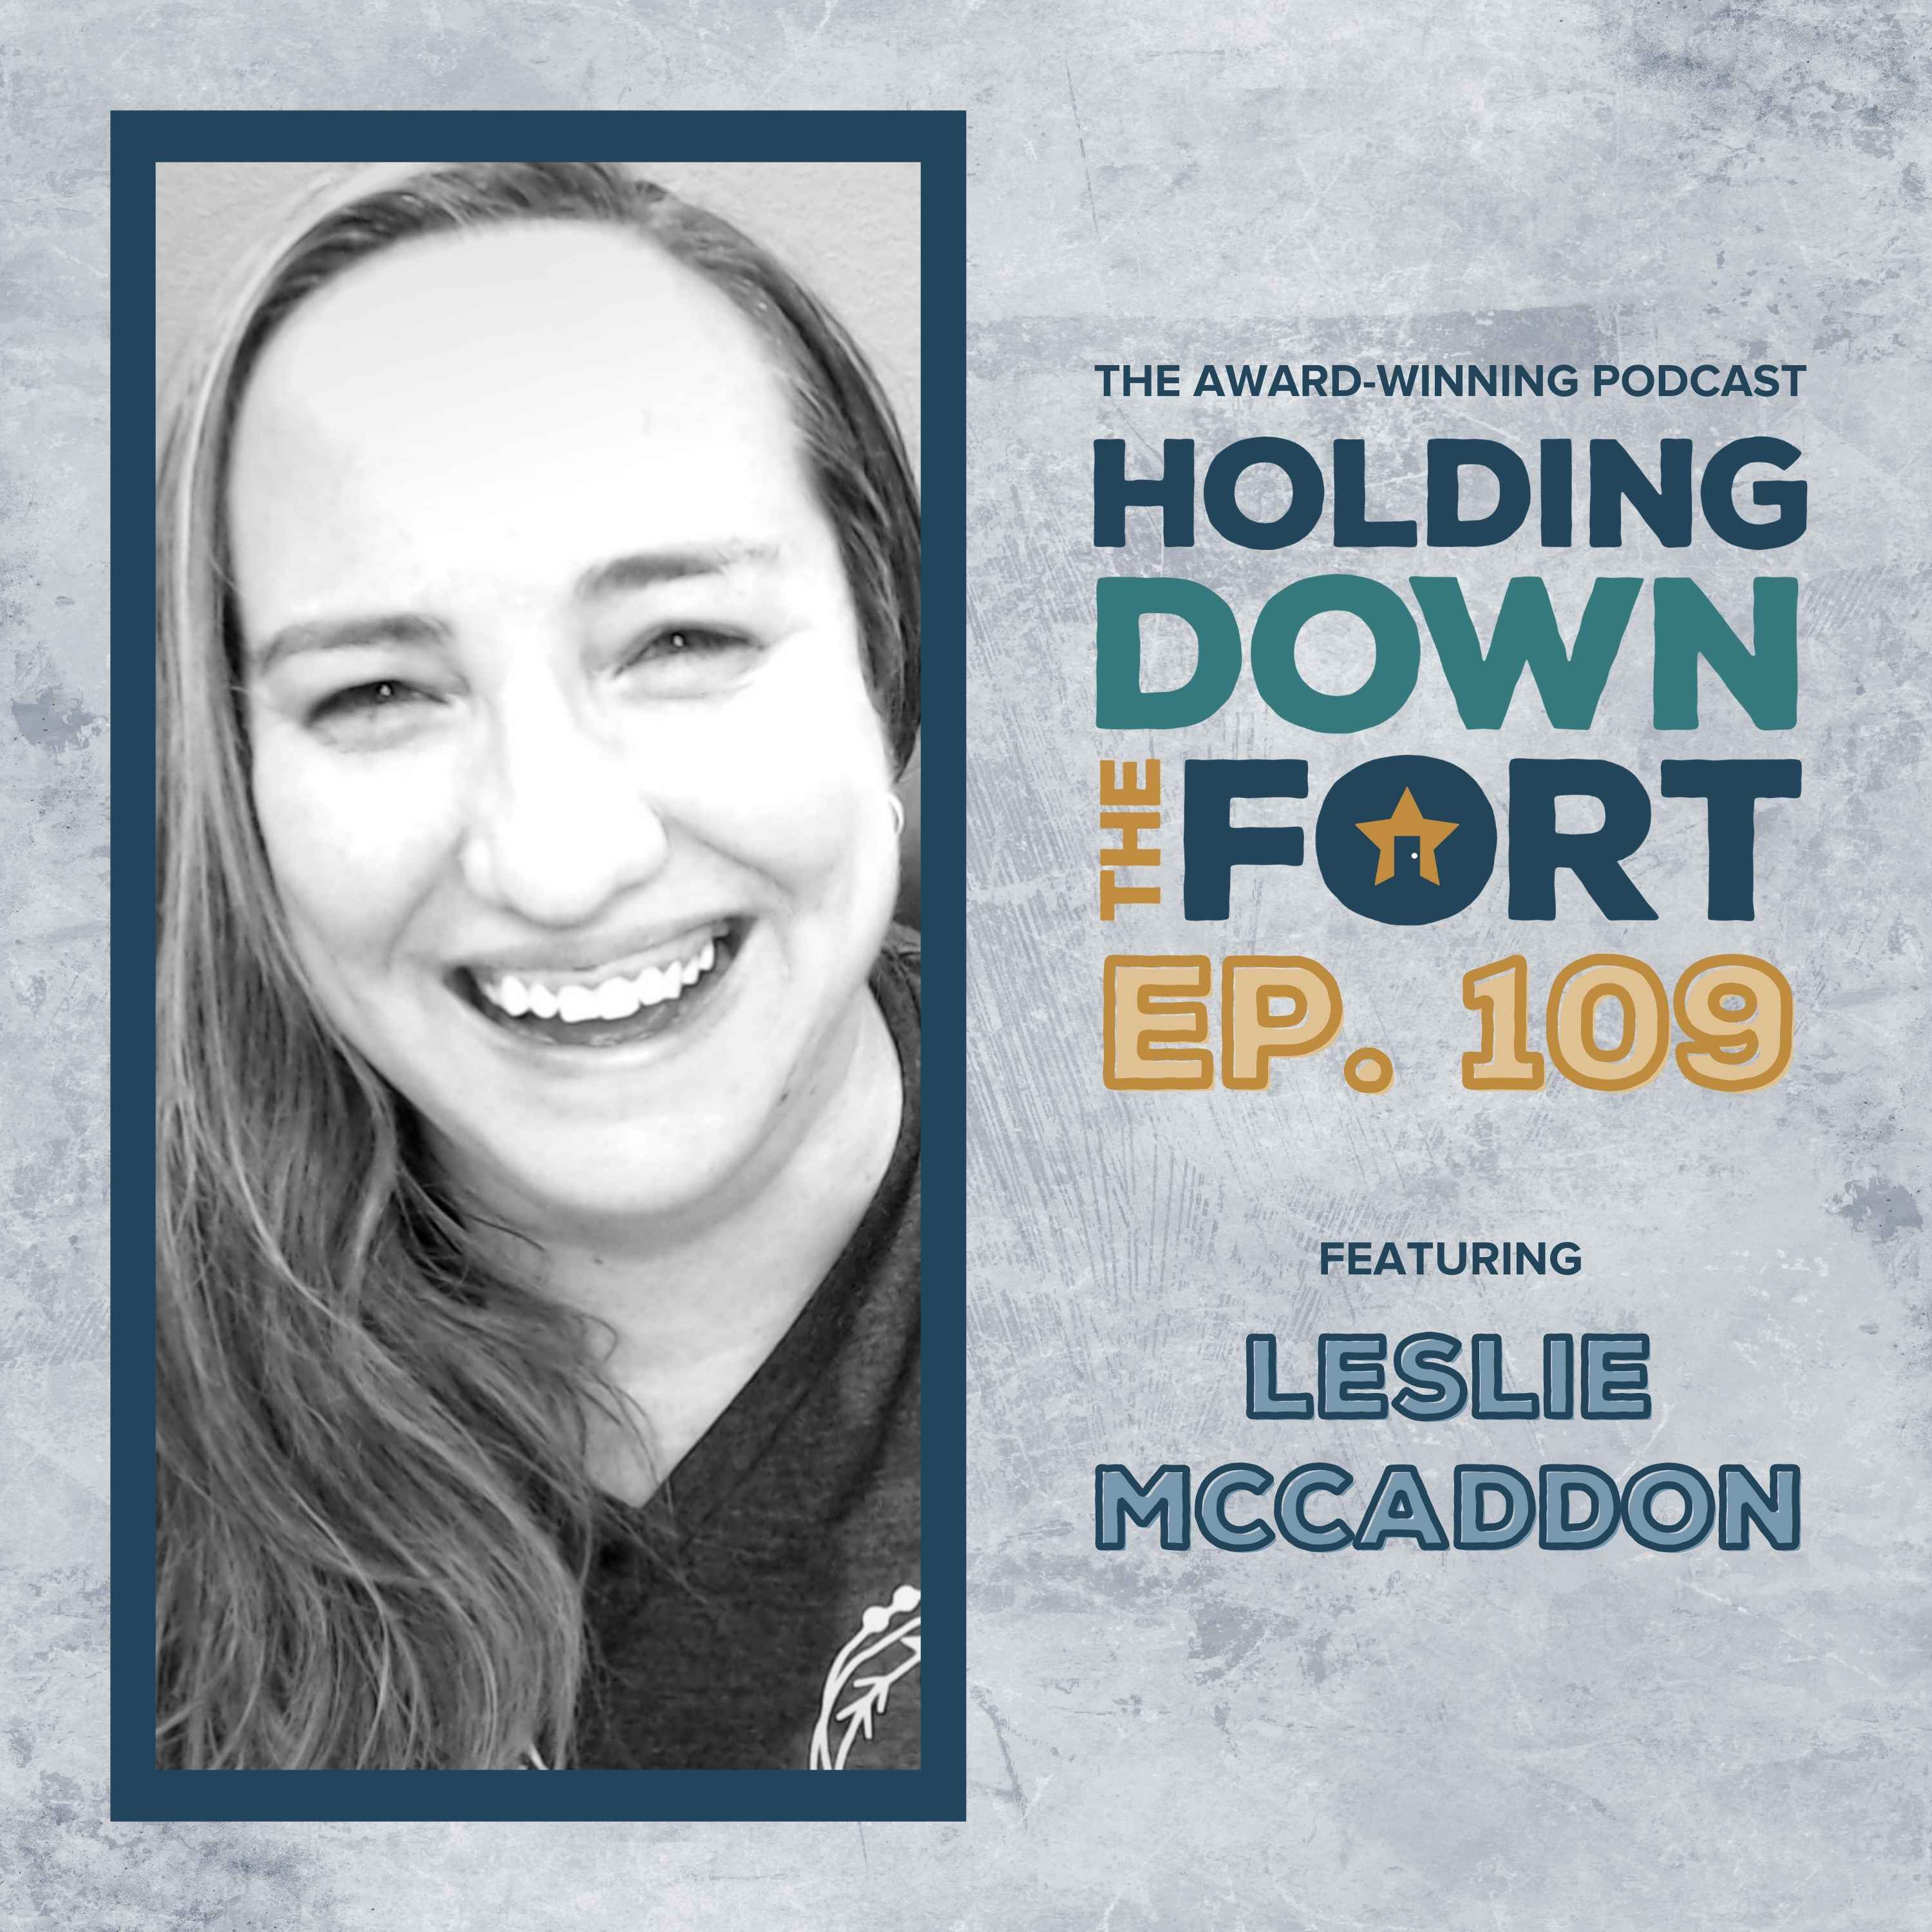 Artwork for podcast Holding Down the Fort Podcast